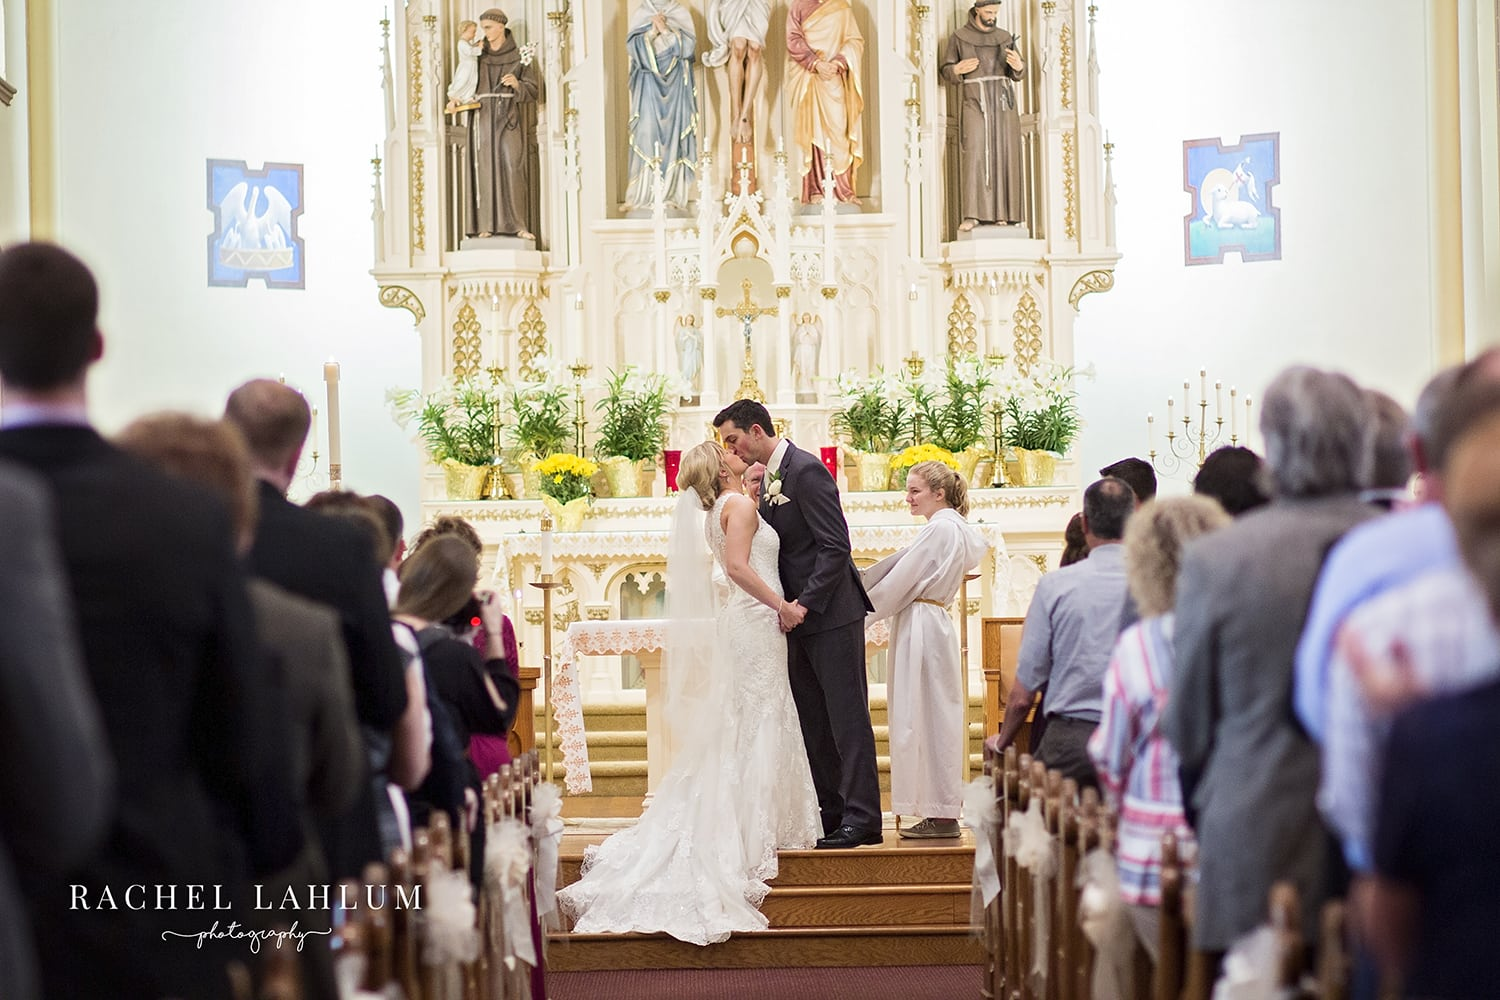 Bride and groom kiss at their wedding ceremony at Guardian Angels Catholic Church in Chaska, MN